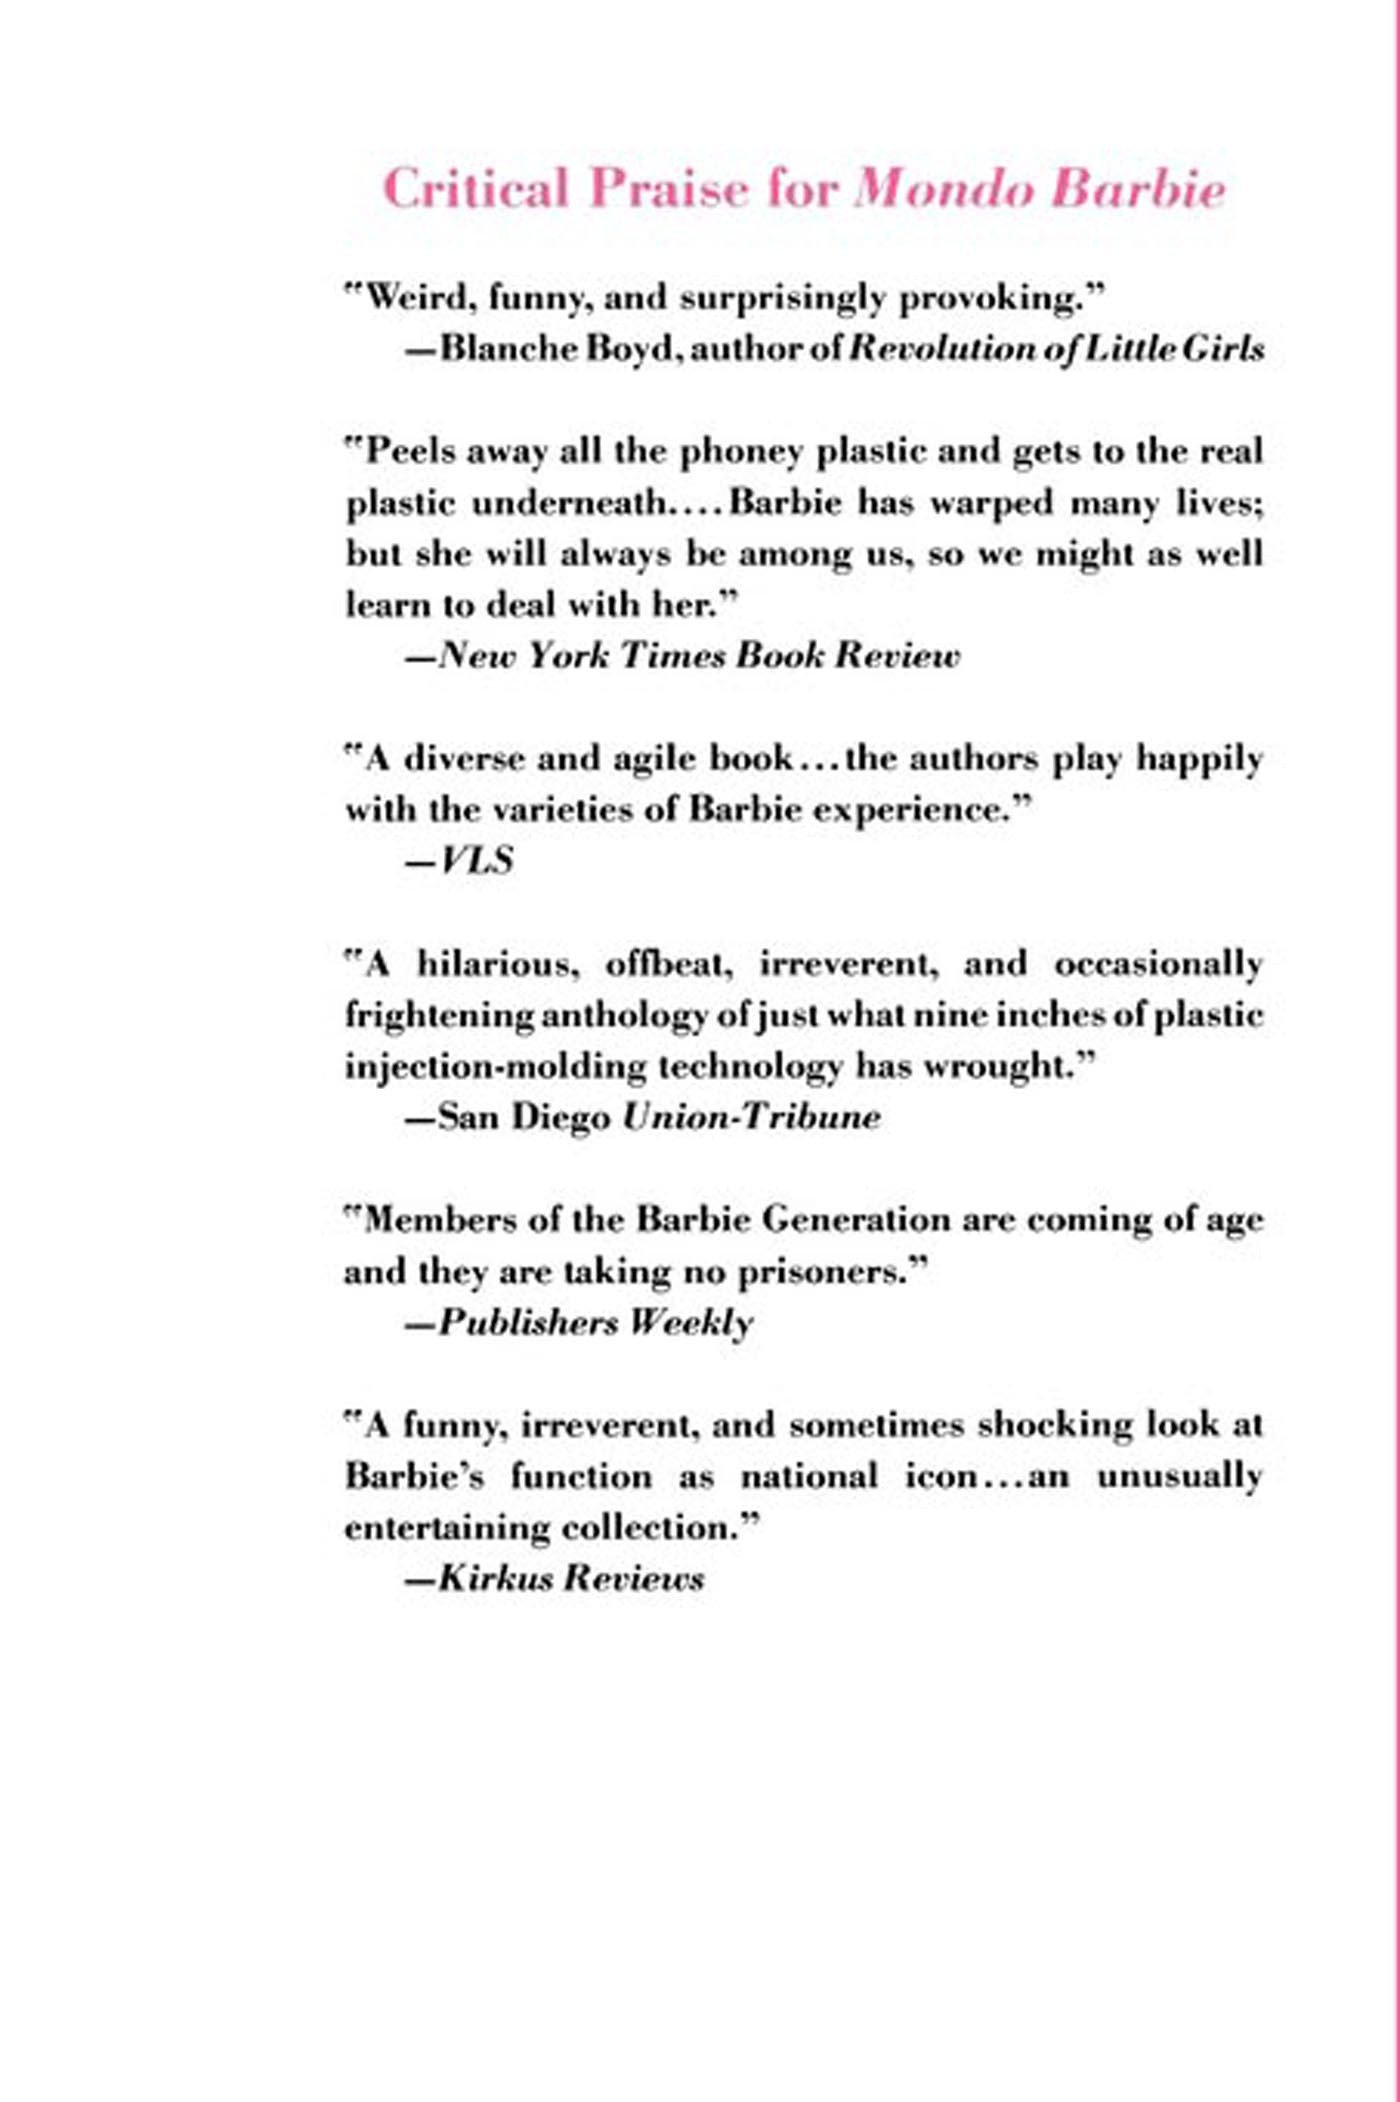 mondo barbie essays on exile and memory lucinda ebersole mondo barbie essays on exile and memory lucinda ebersole richard peabody 9780312088484 com books